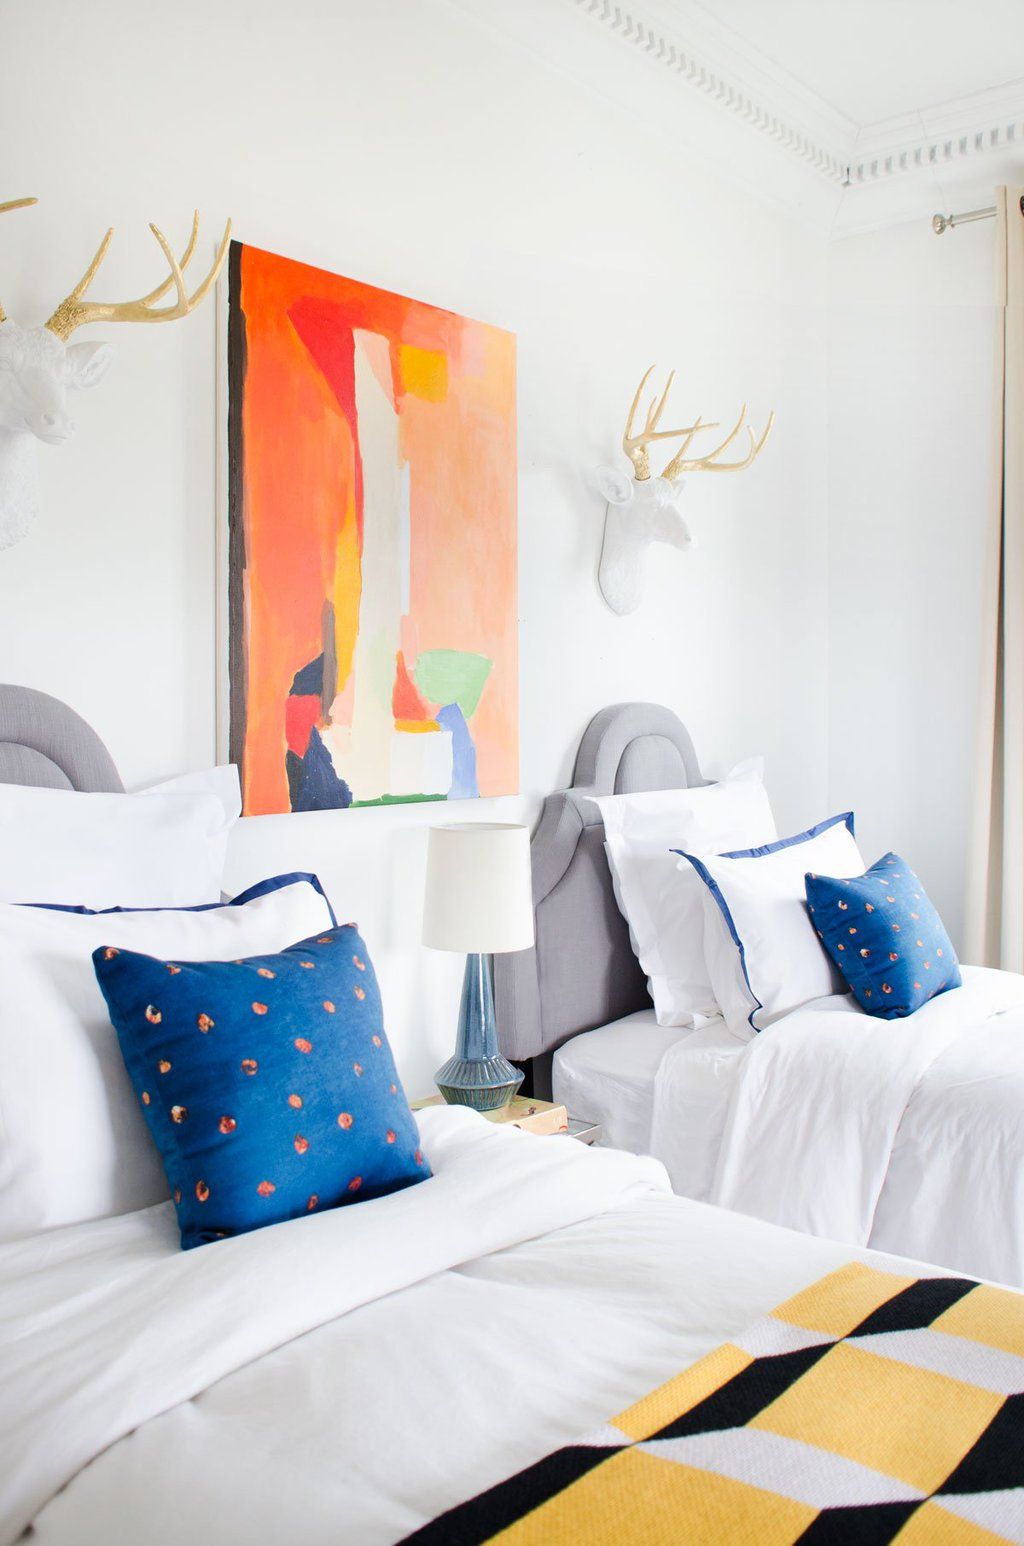 Colorful modern bedroom design with twin beds on Thou Swell @thouswellblog